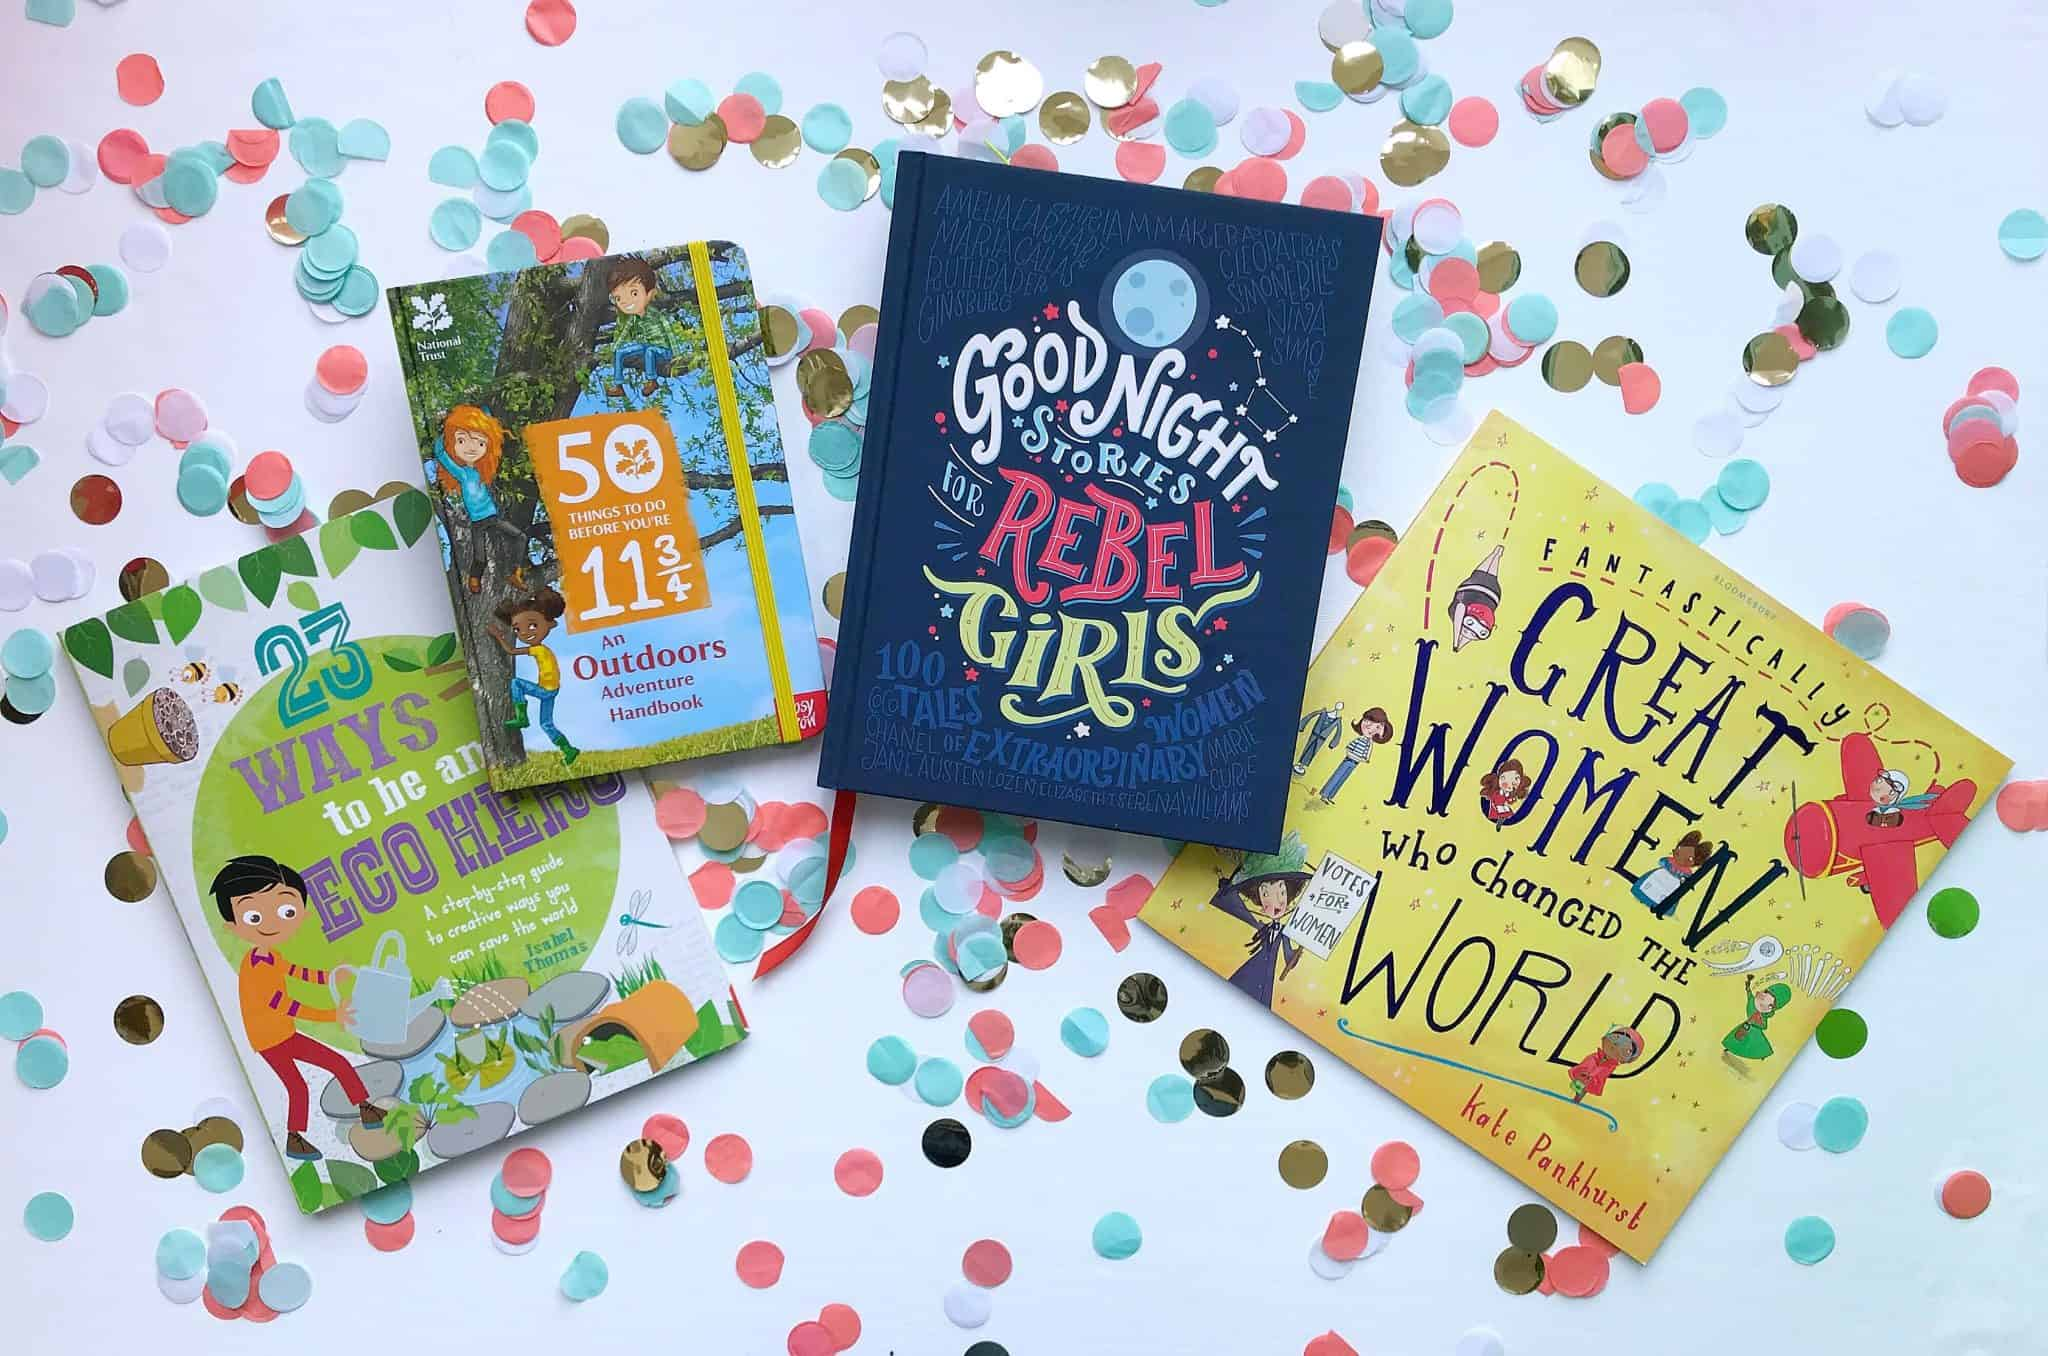 Educational, Inspirational and Environmental books make great Ethical Gifts for Kids